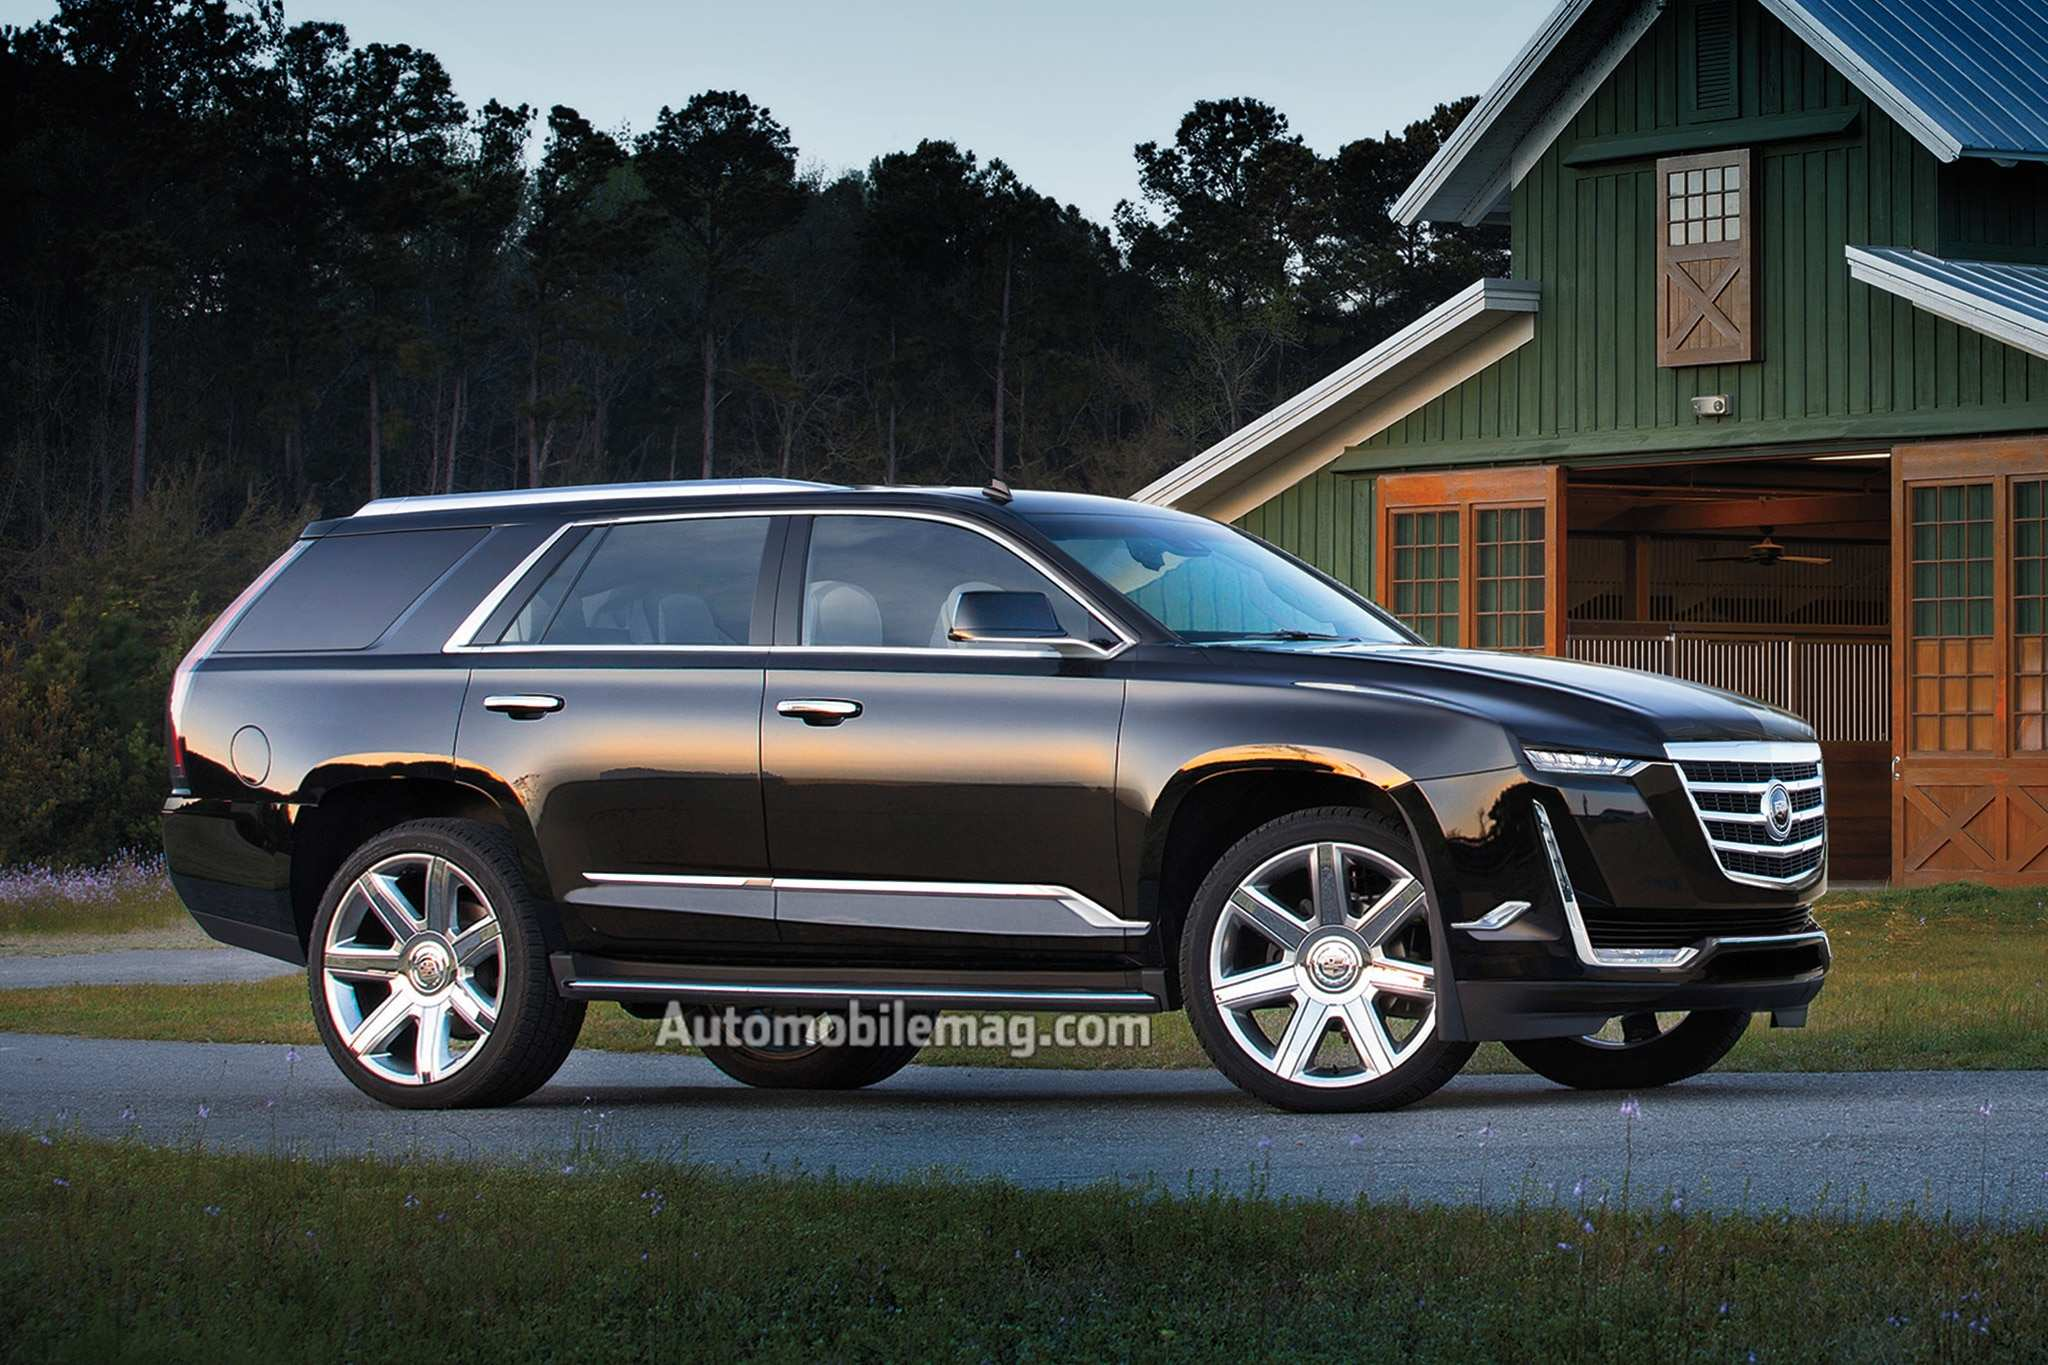 34 New New Cadillac Escalade 2020 Release Date